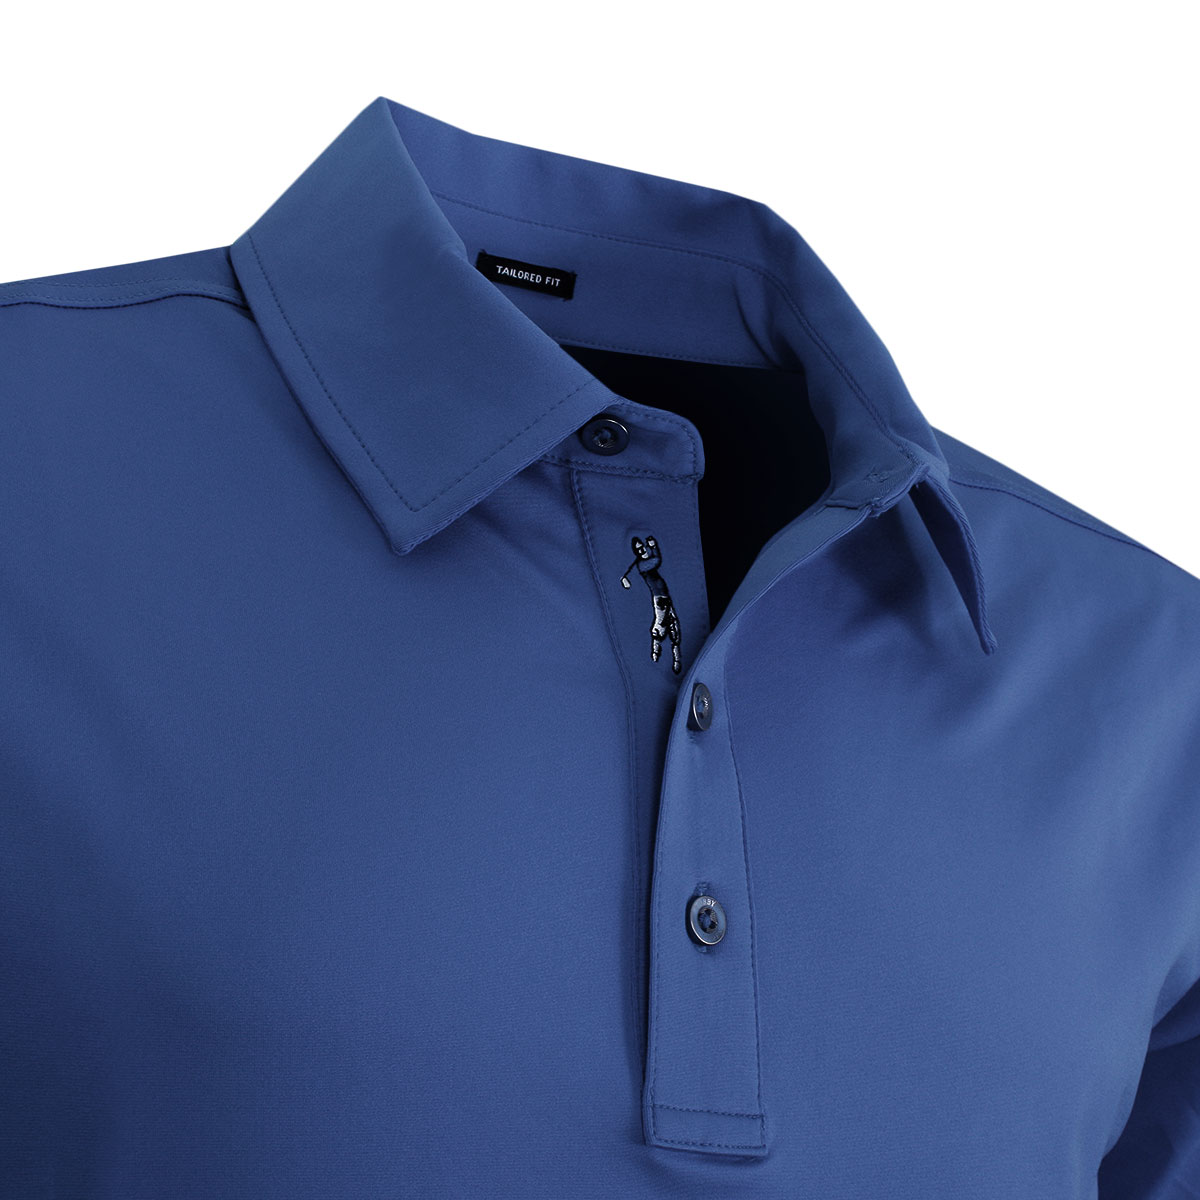 Bobby-Jones-Mens-XH2O-Perf-Solid-Jersey-TF-Golf-Polo-Shirt-69-OFF-RRP thumbnail 18